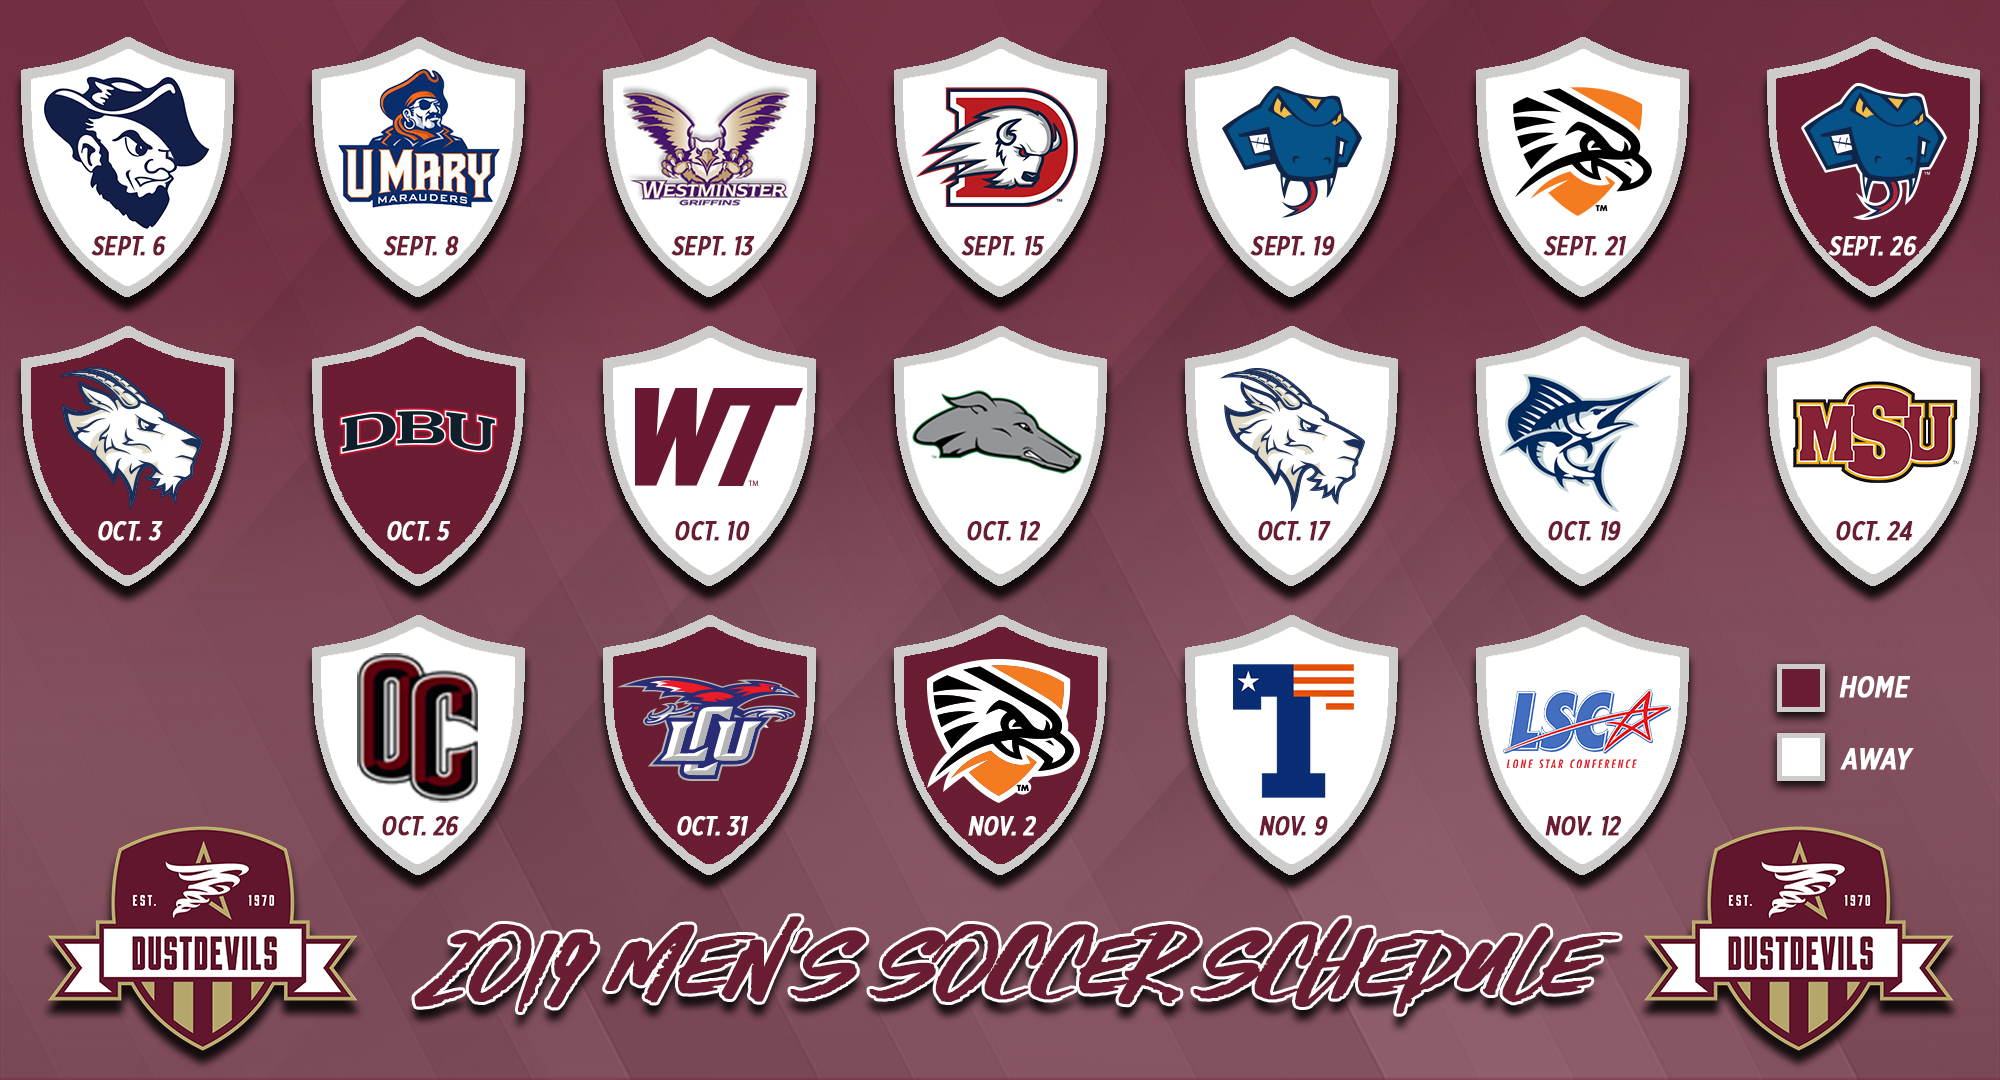 TAMIU men\'s soccer announces 2019 schedule.